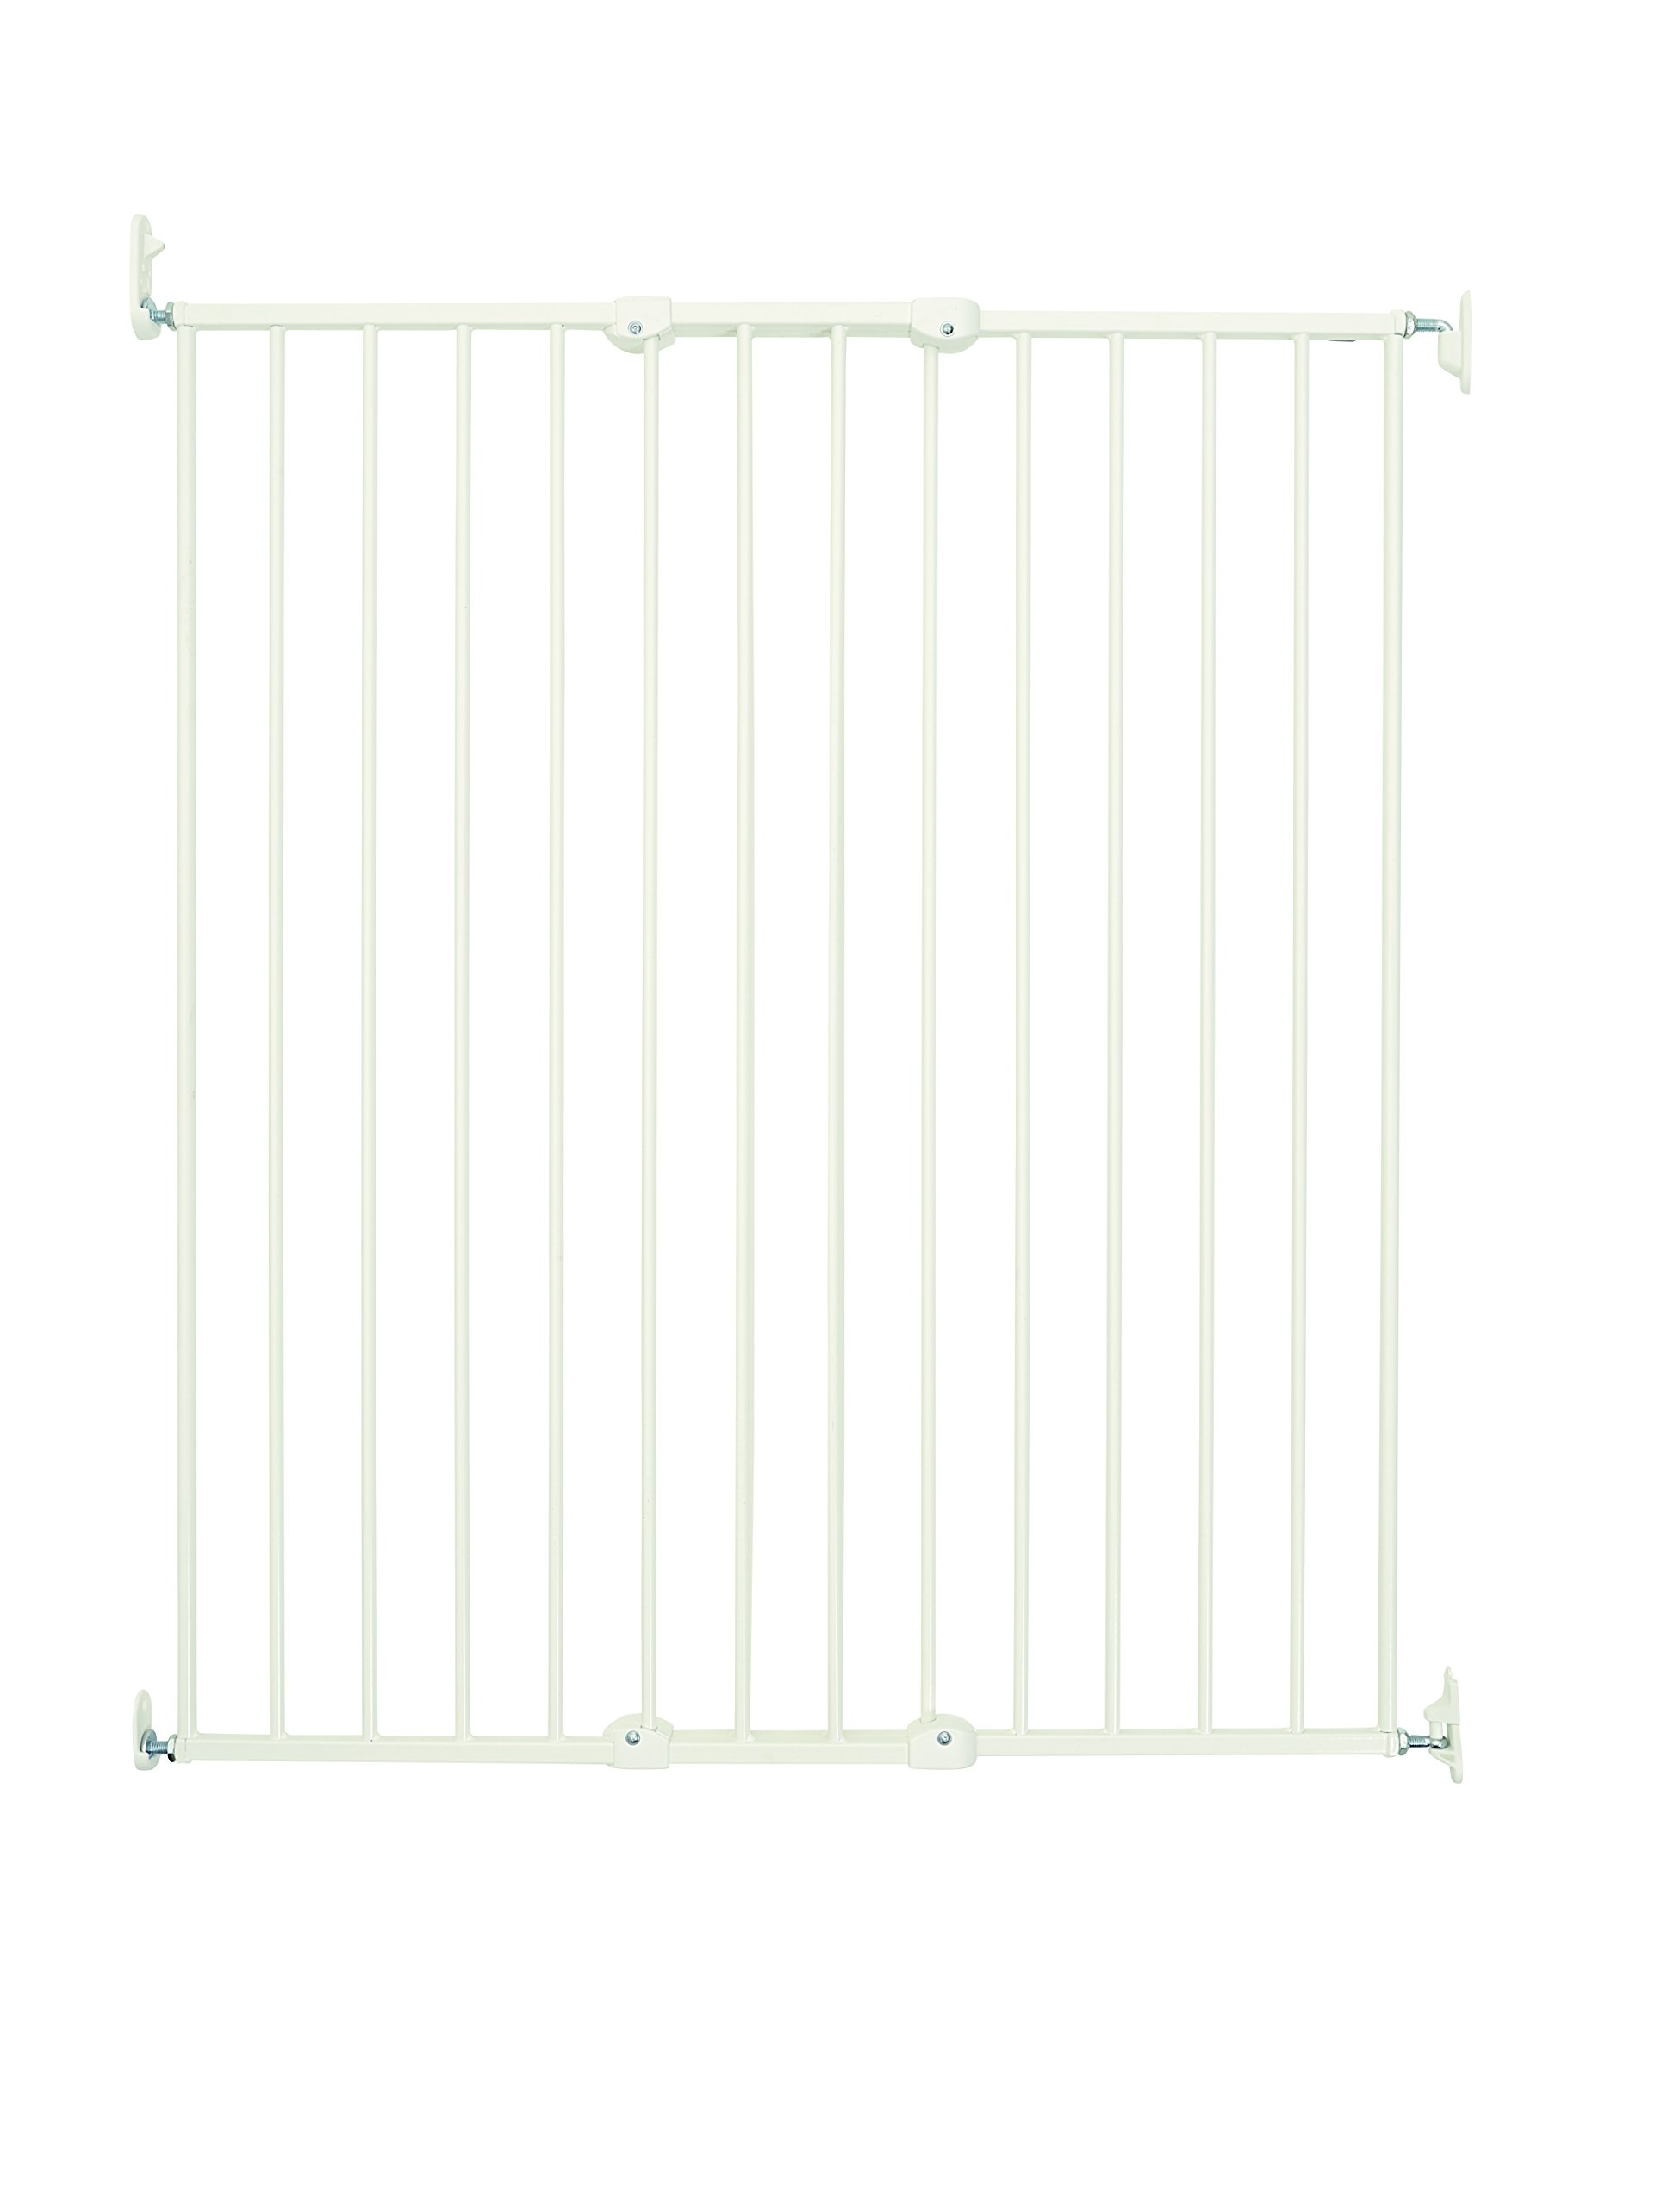 BabyDan Extra Tall Extending Safety Gate, White  Fits openings from 63.5 to 107 cm wide; 103,5 in height when mounted. Extra height designed for protecting pets and toddlers Quick-release fittings for removal when not required [ item screws into the wall ,  The item is quick release leaving just the wall fixing bracket ] 1